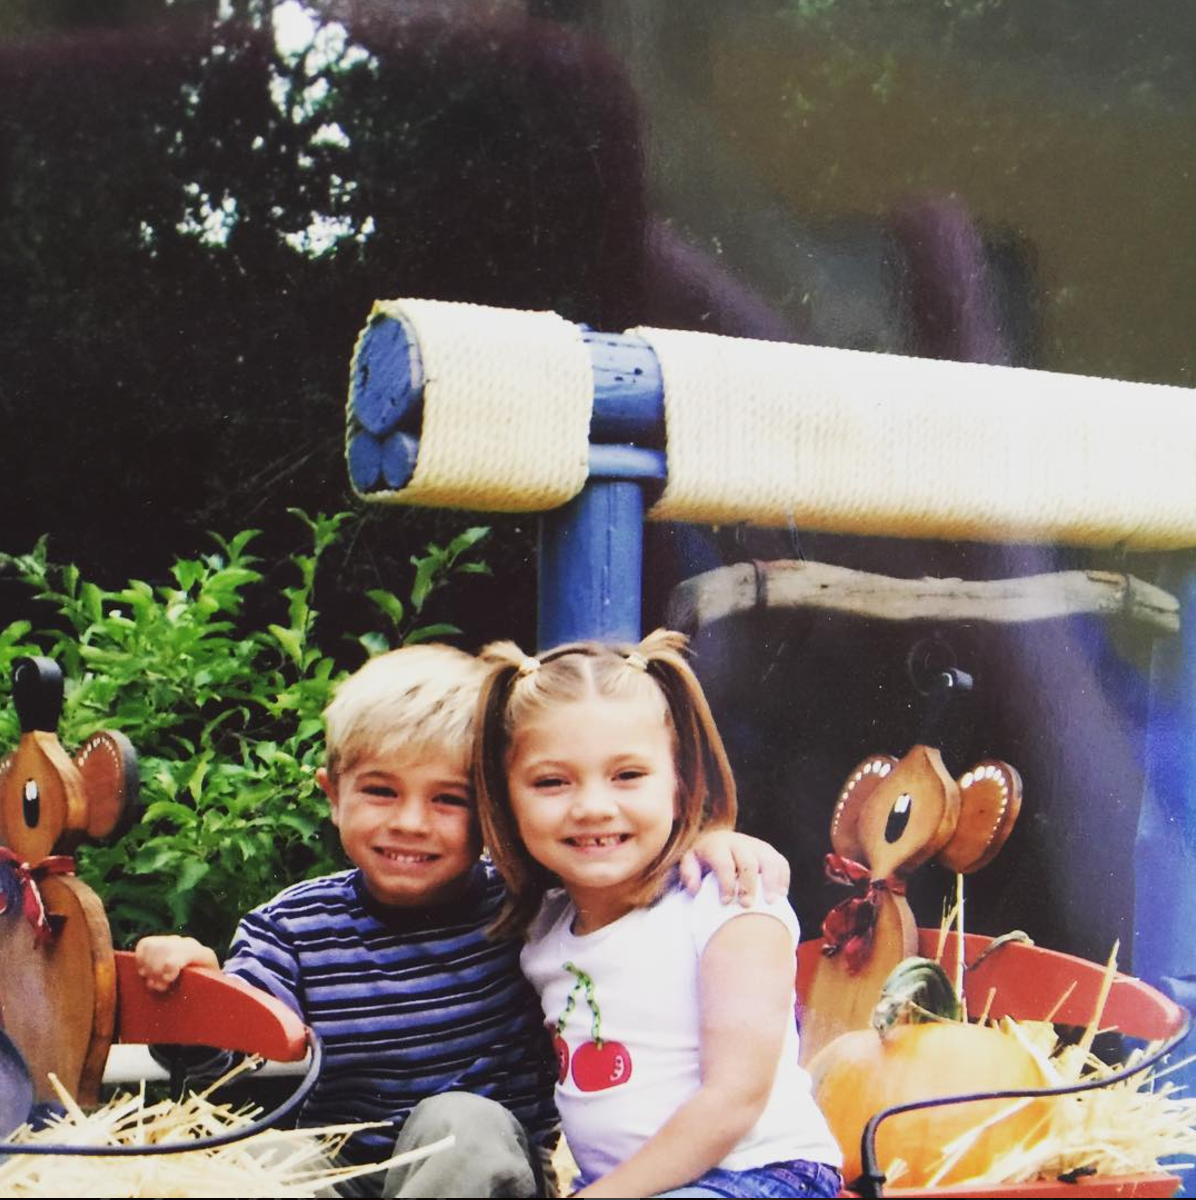 Matthew and Taylor, our beautiful children when they were younger.